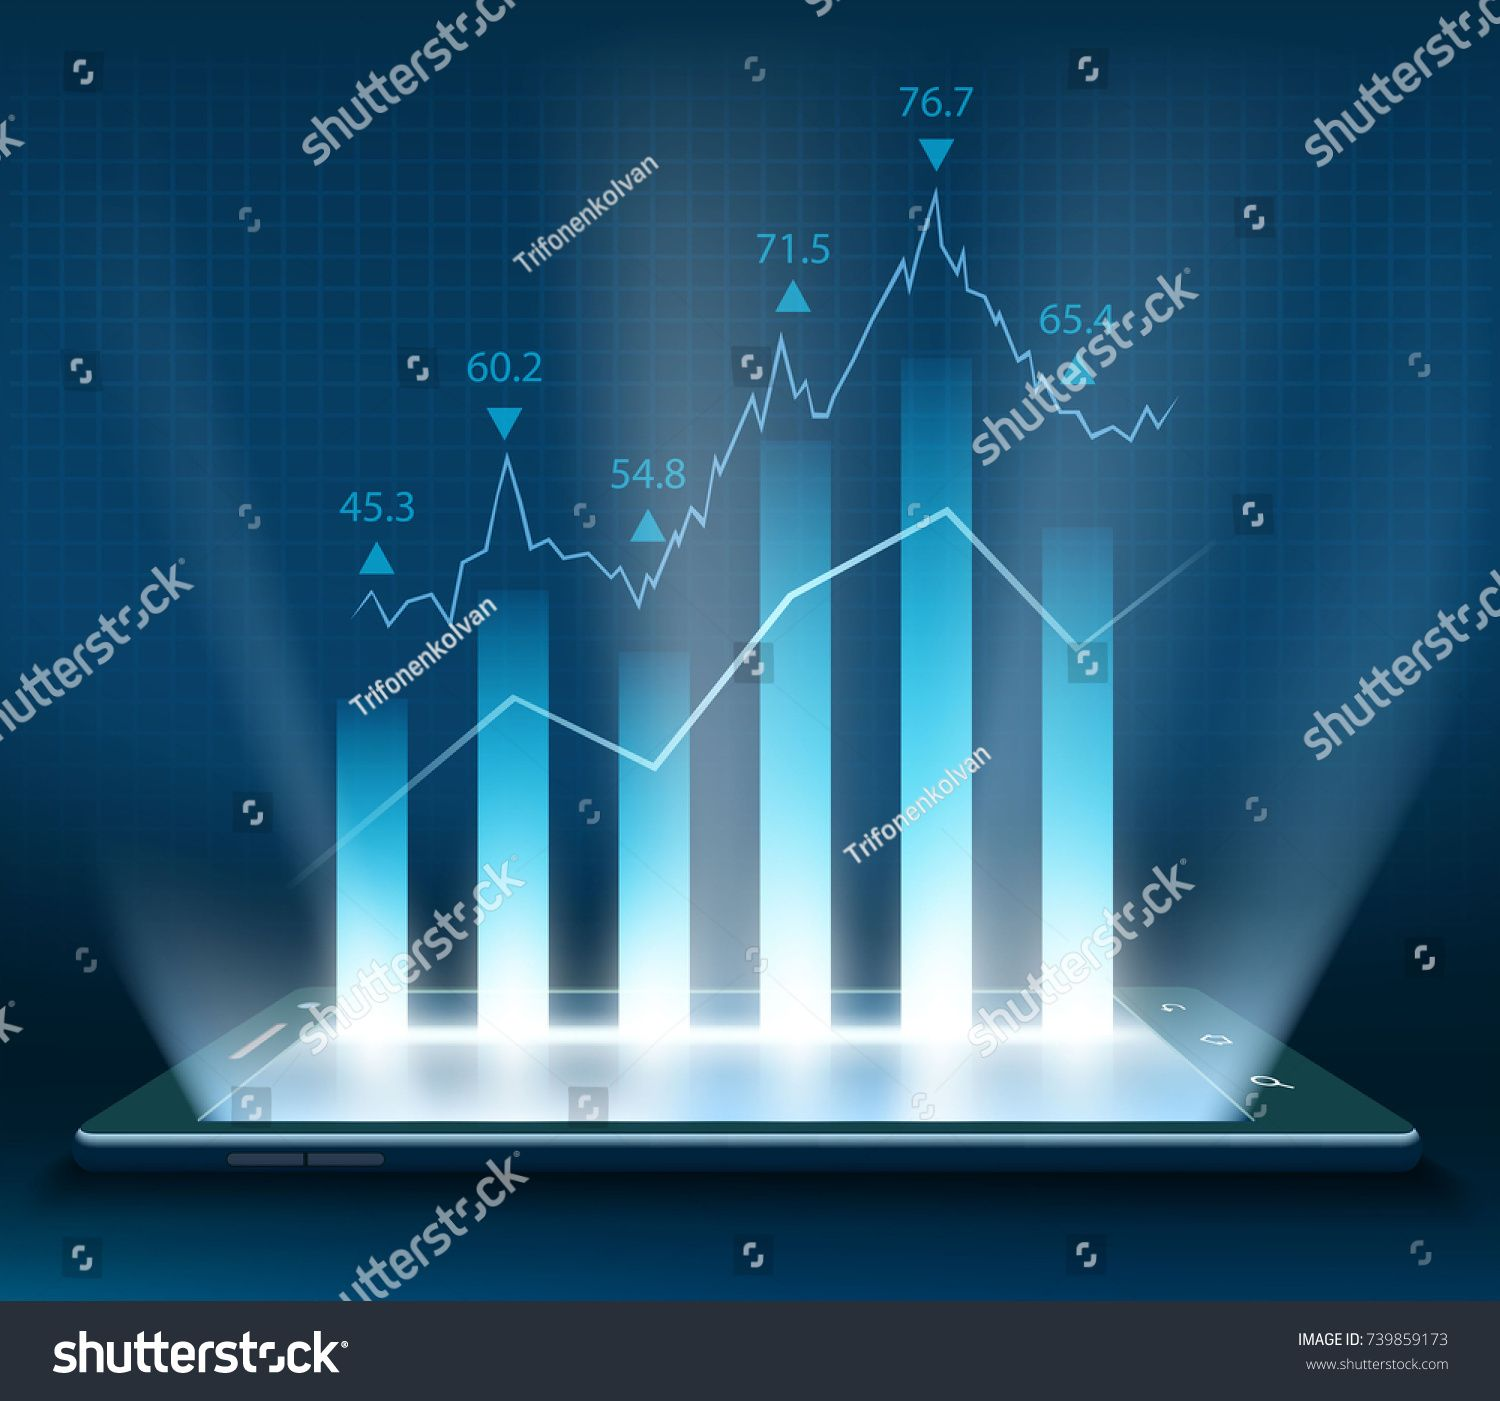 Stock Market Data On The Smartphone Screen Graph With Financial Information Stock Vector Illustration Smartphon Stock Market Data Marketing Data Stock Market